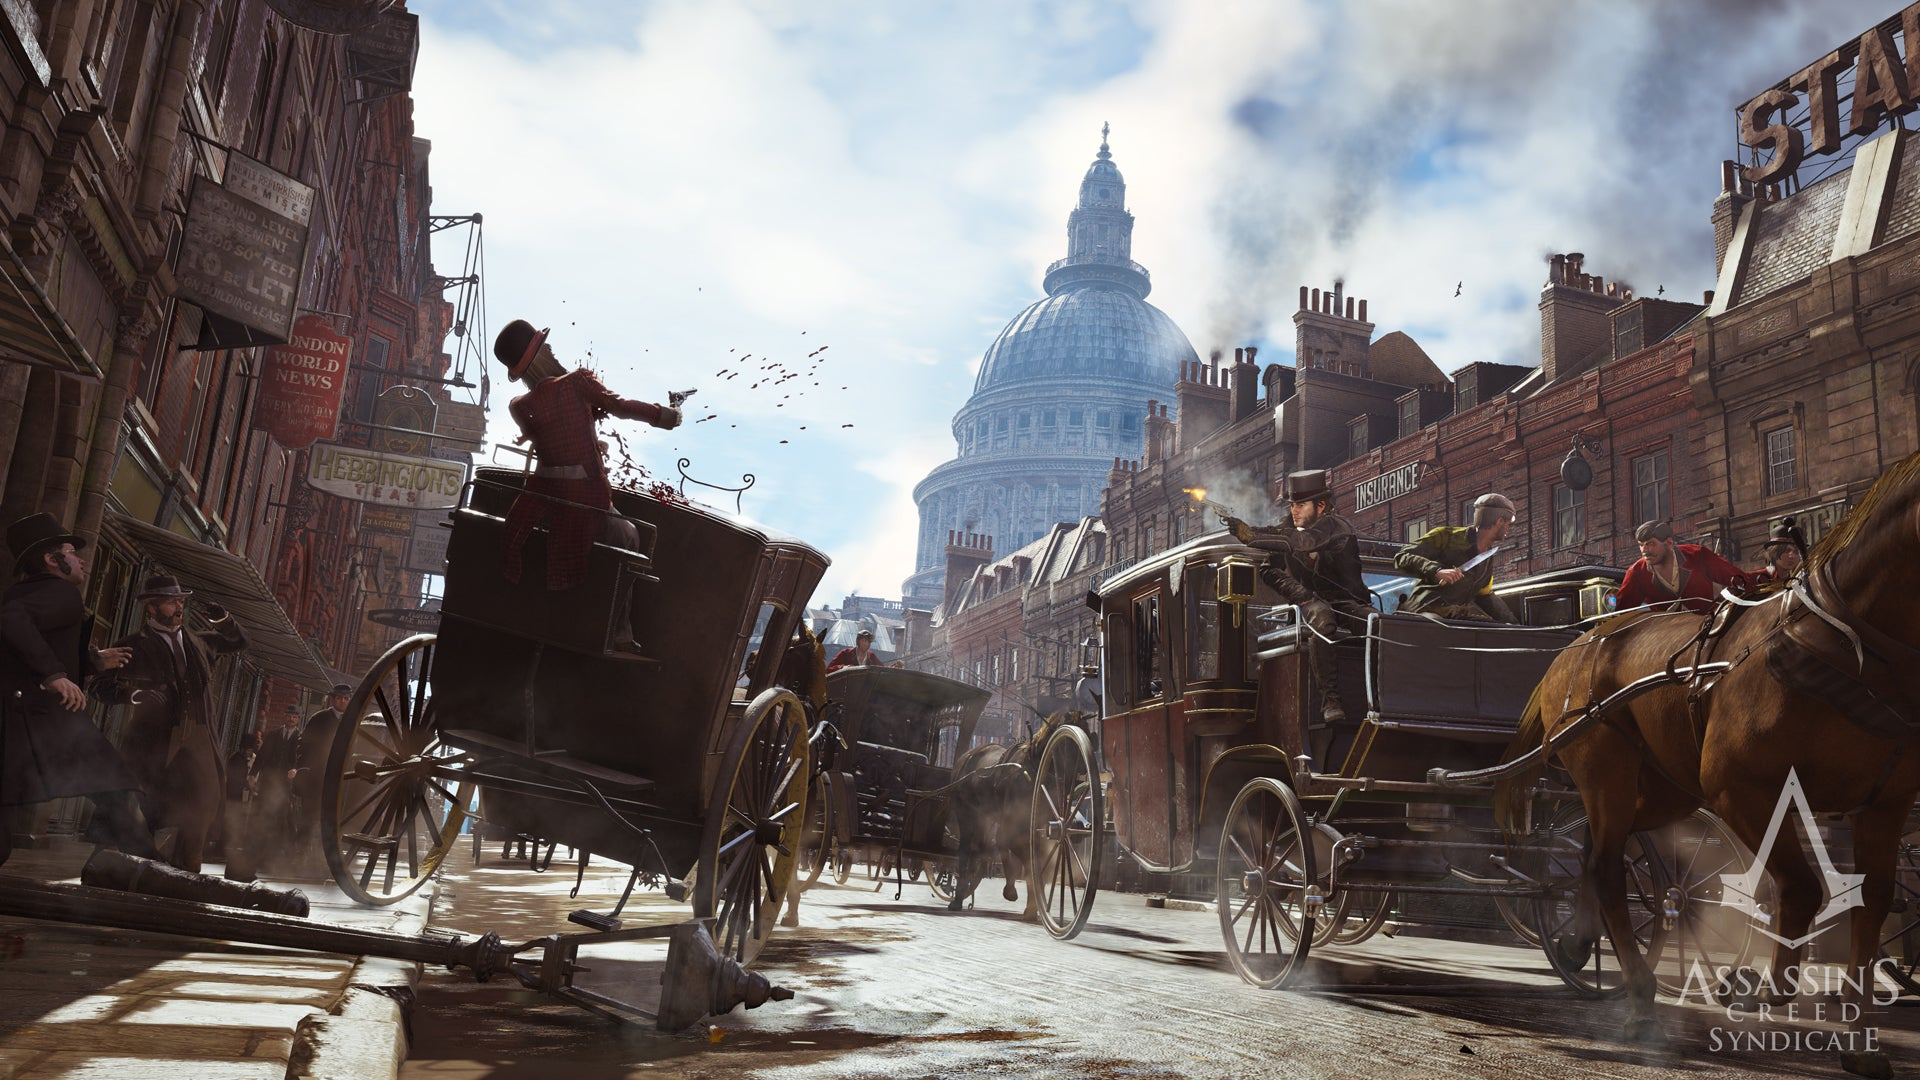 It's Official: Assassin's Creed Is Skipping 2016